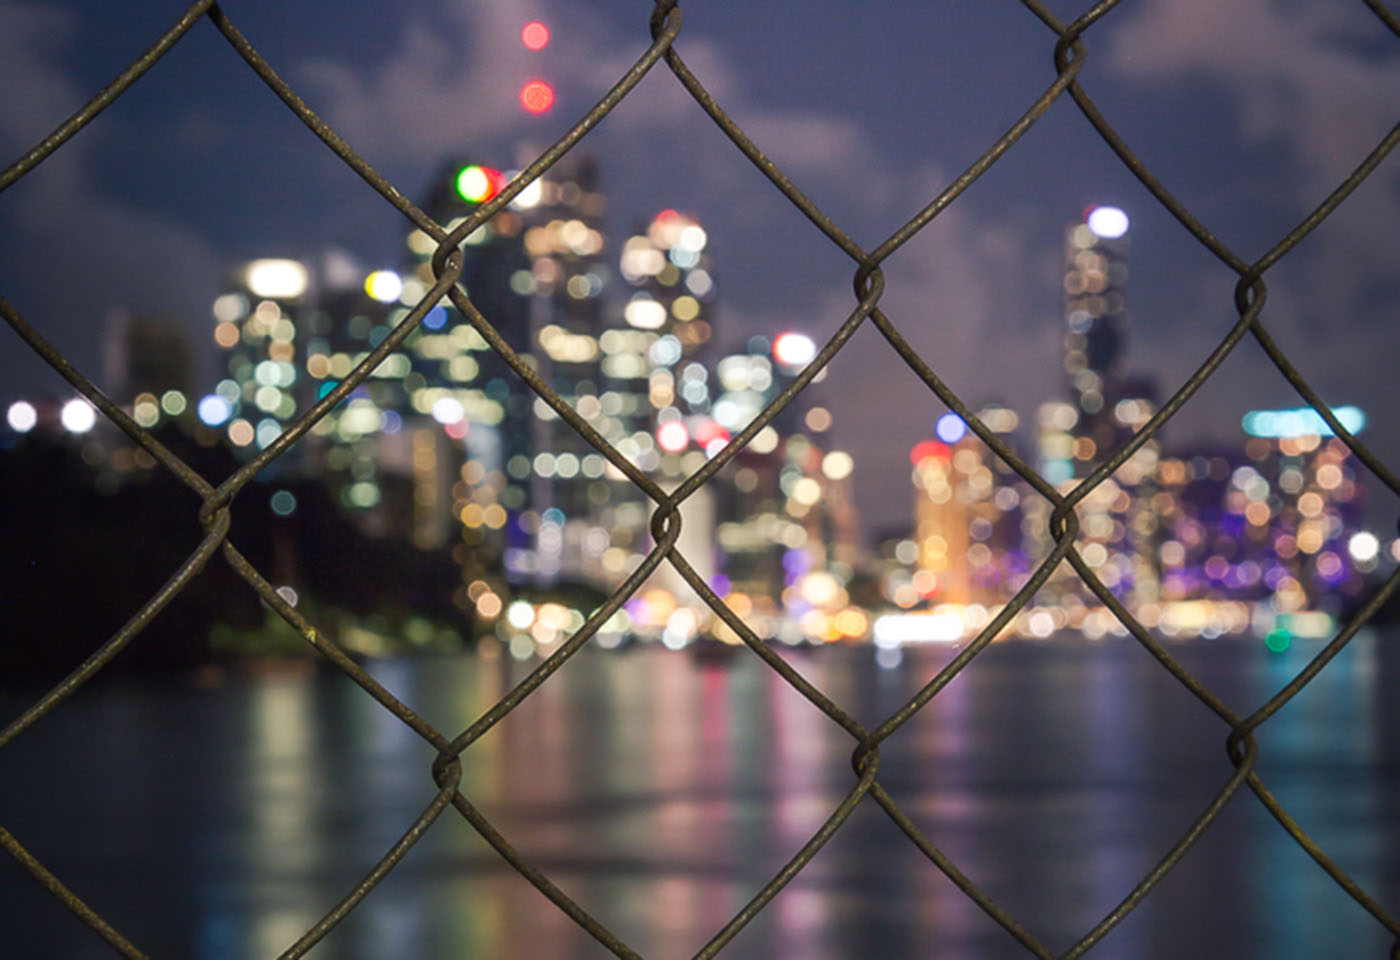 Landscape image of Kangaroo Point through a gate